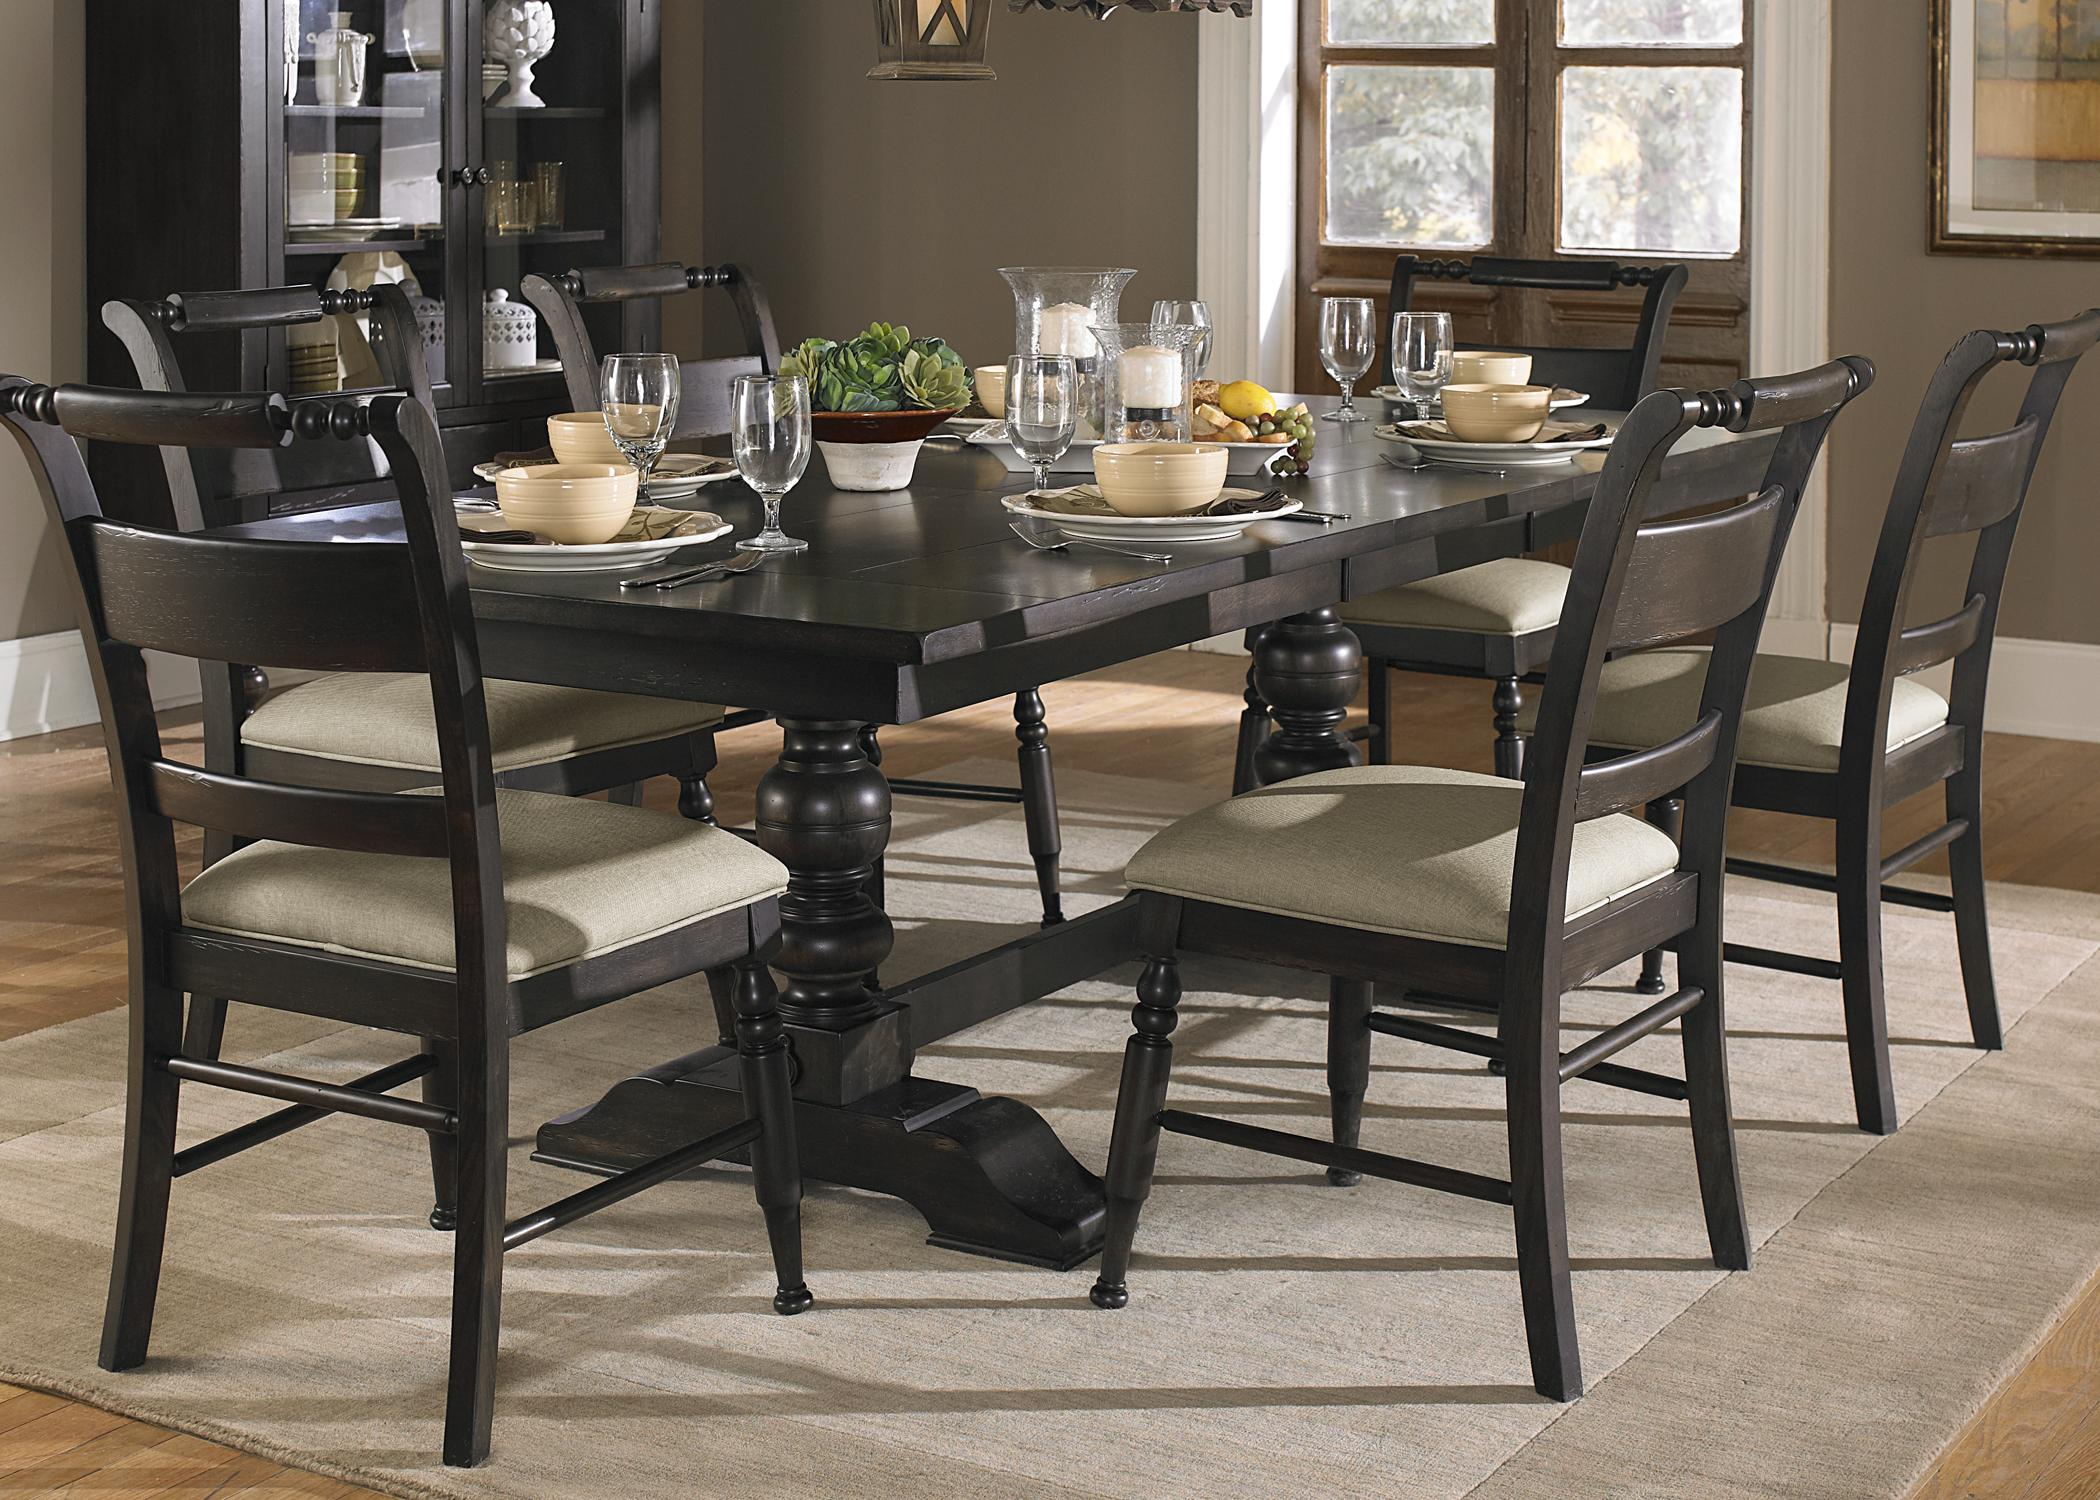 Dining Room Chair Sets Whitney 7 Piece Trestle Dining Room Table Set By Liberty Furniture At Royal Furniture